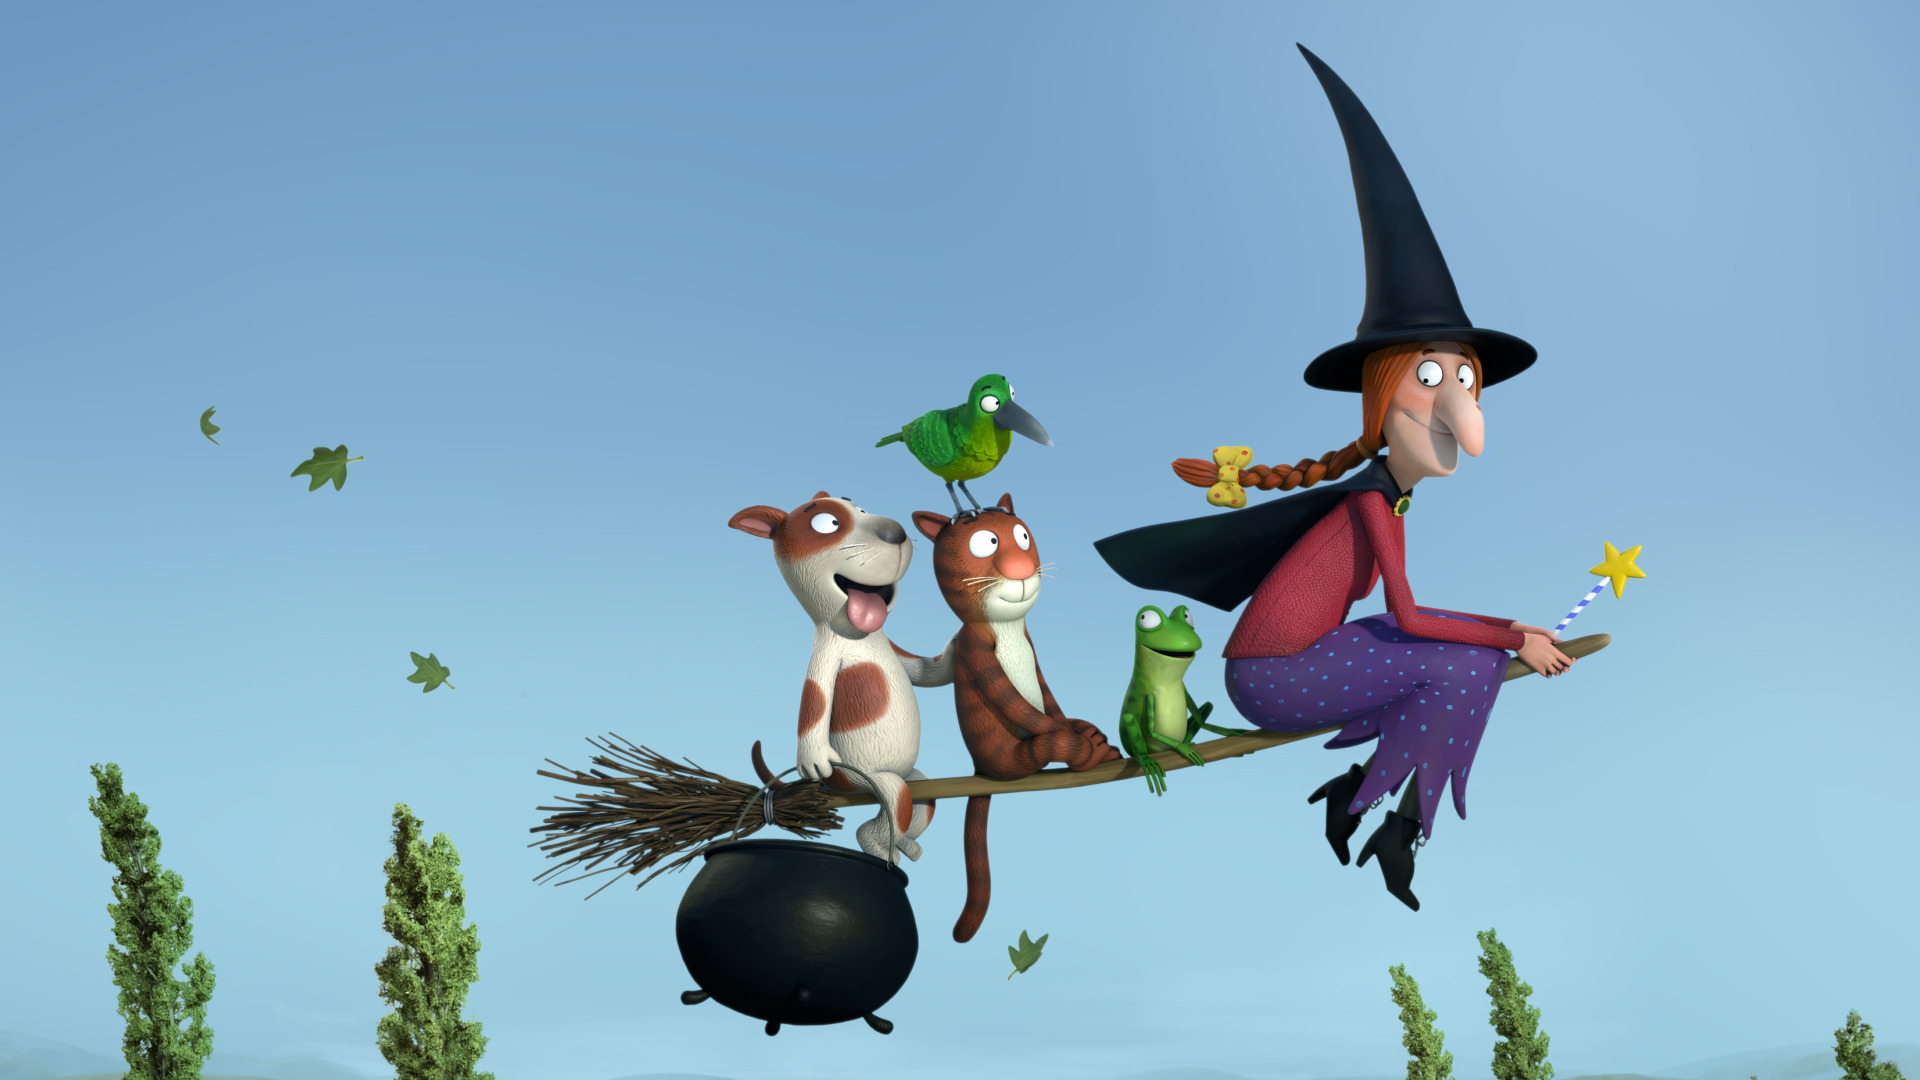 ROOM ON THE BROOM © Orange Eyes Limited 2012